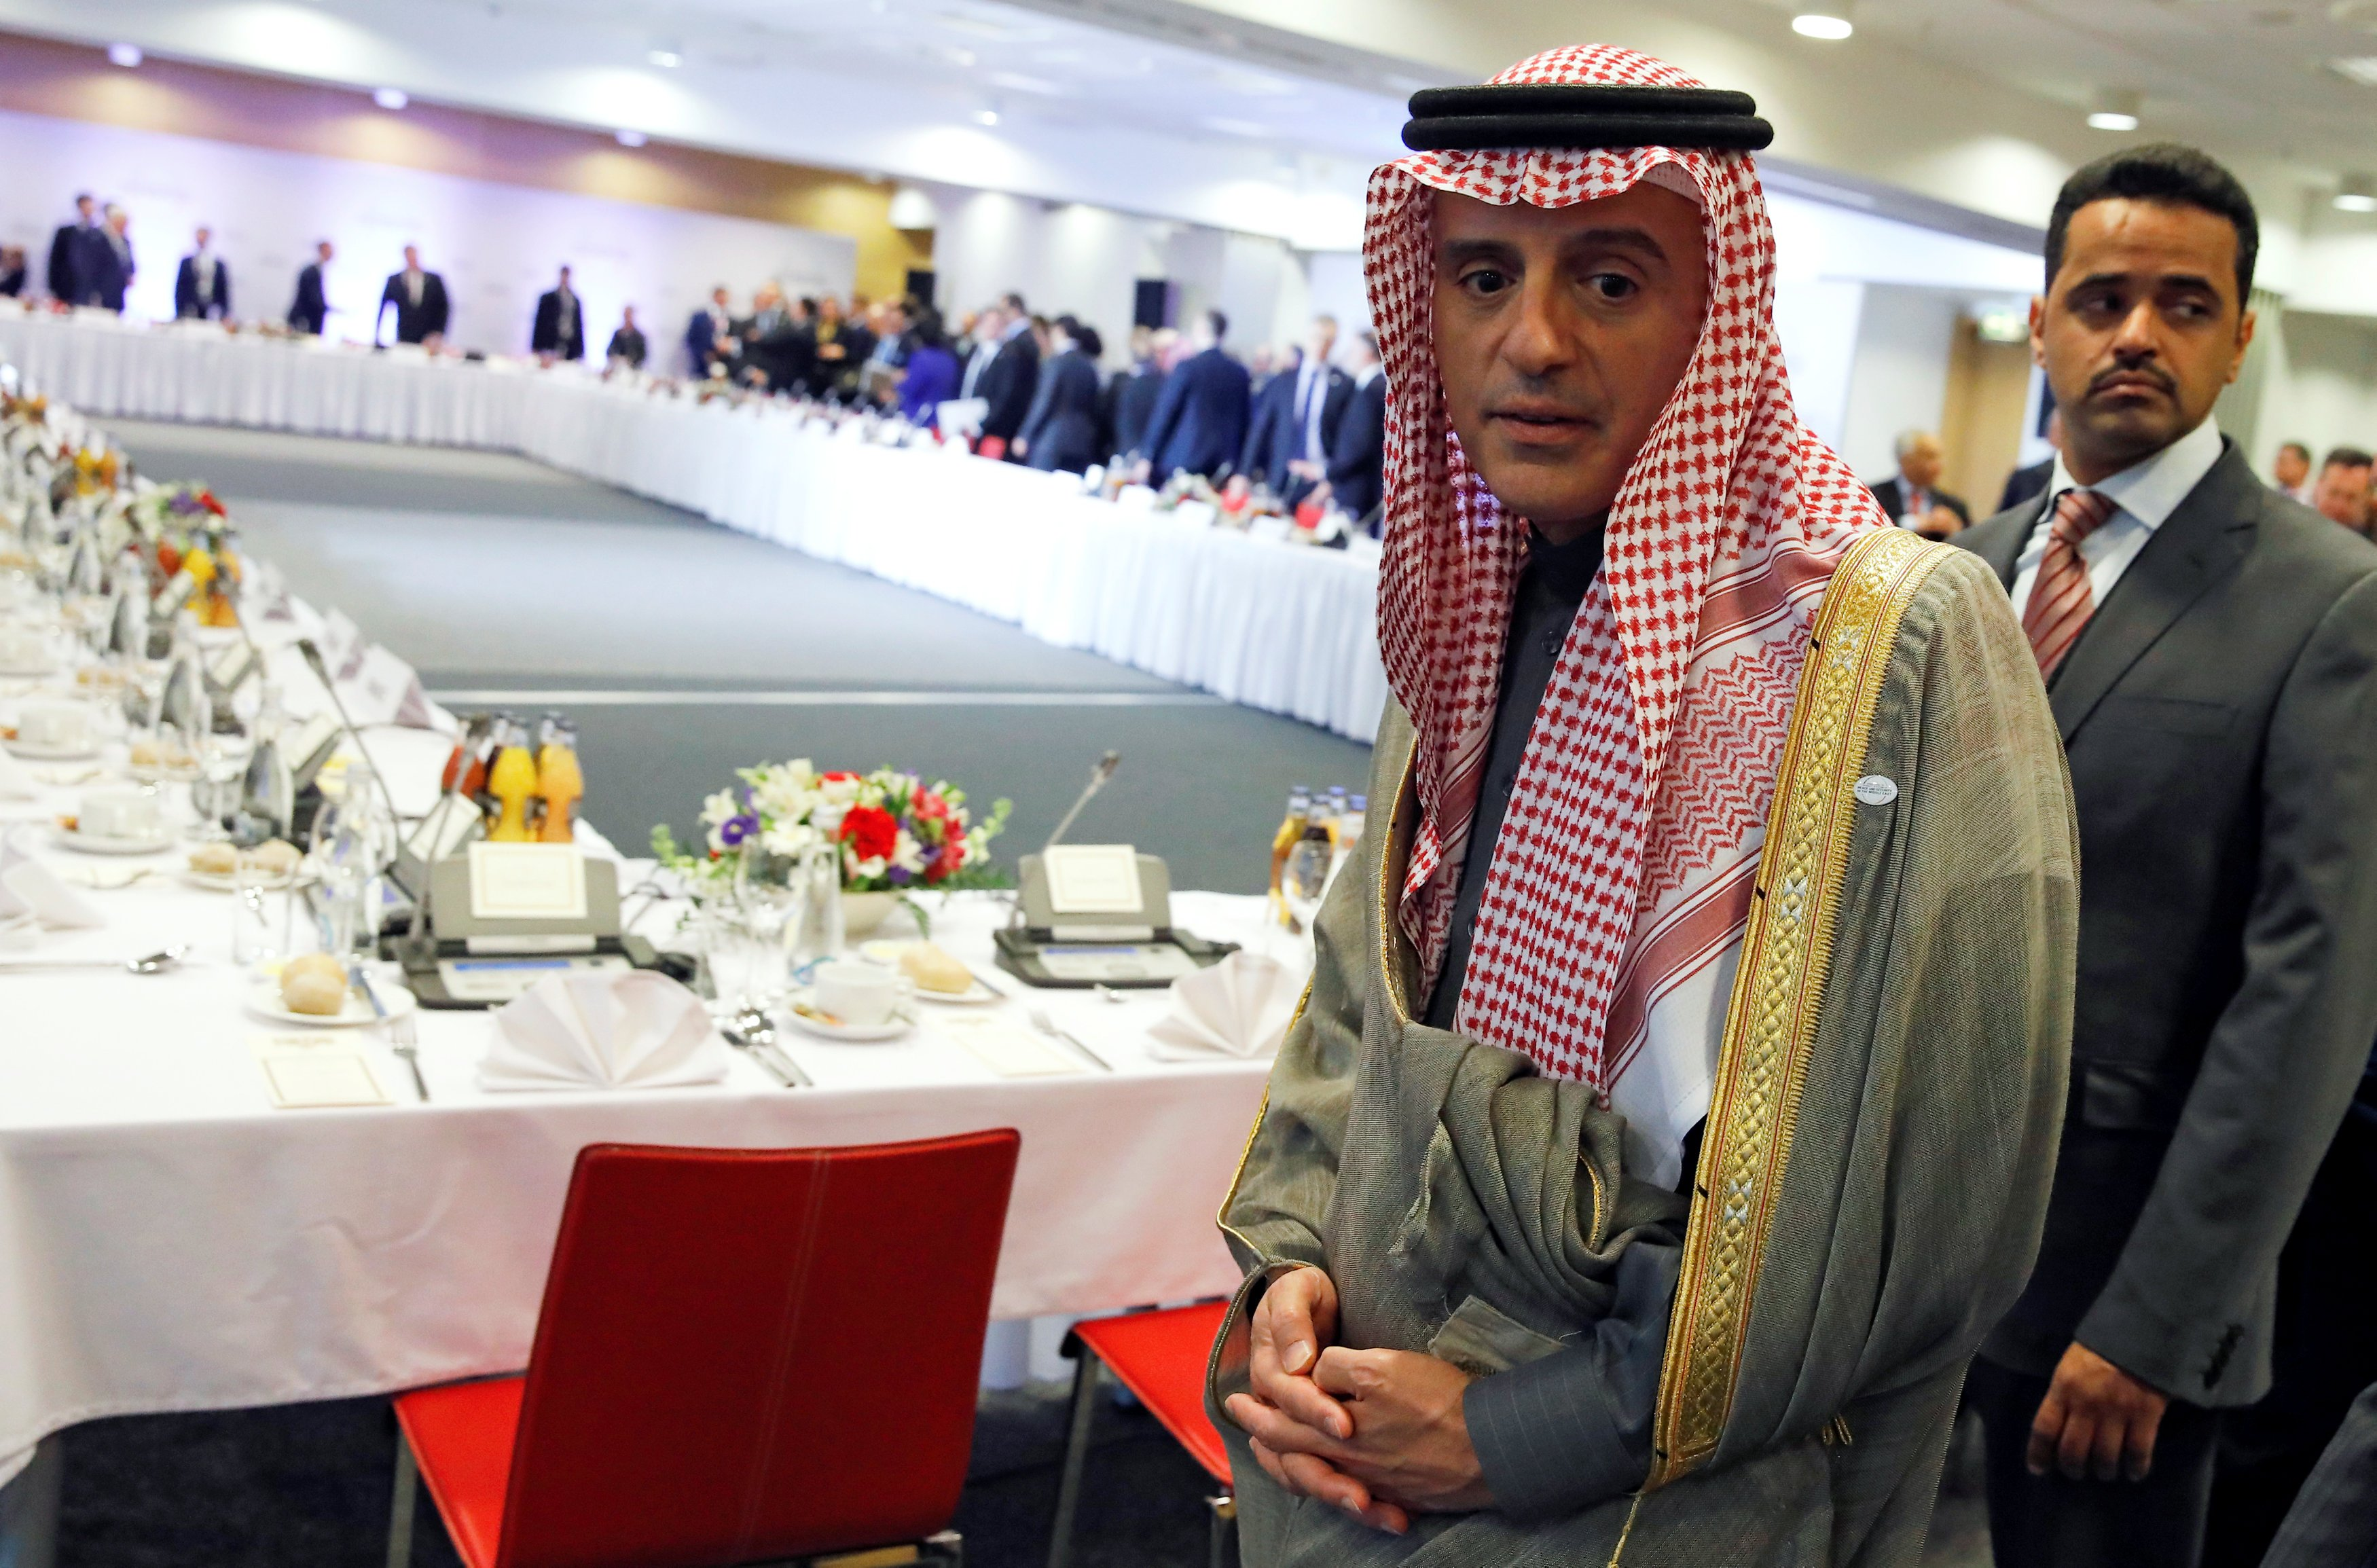 'Stop lecturing us': Saudi diplomat dismisses human rights concerns by EU lawmakers